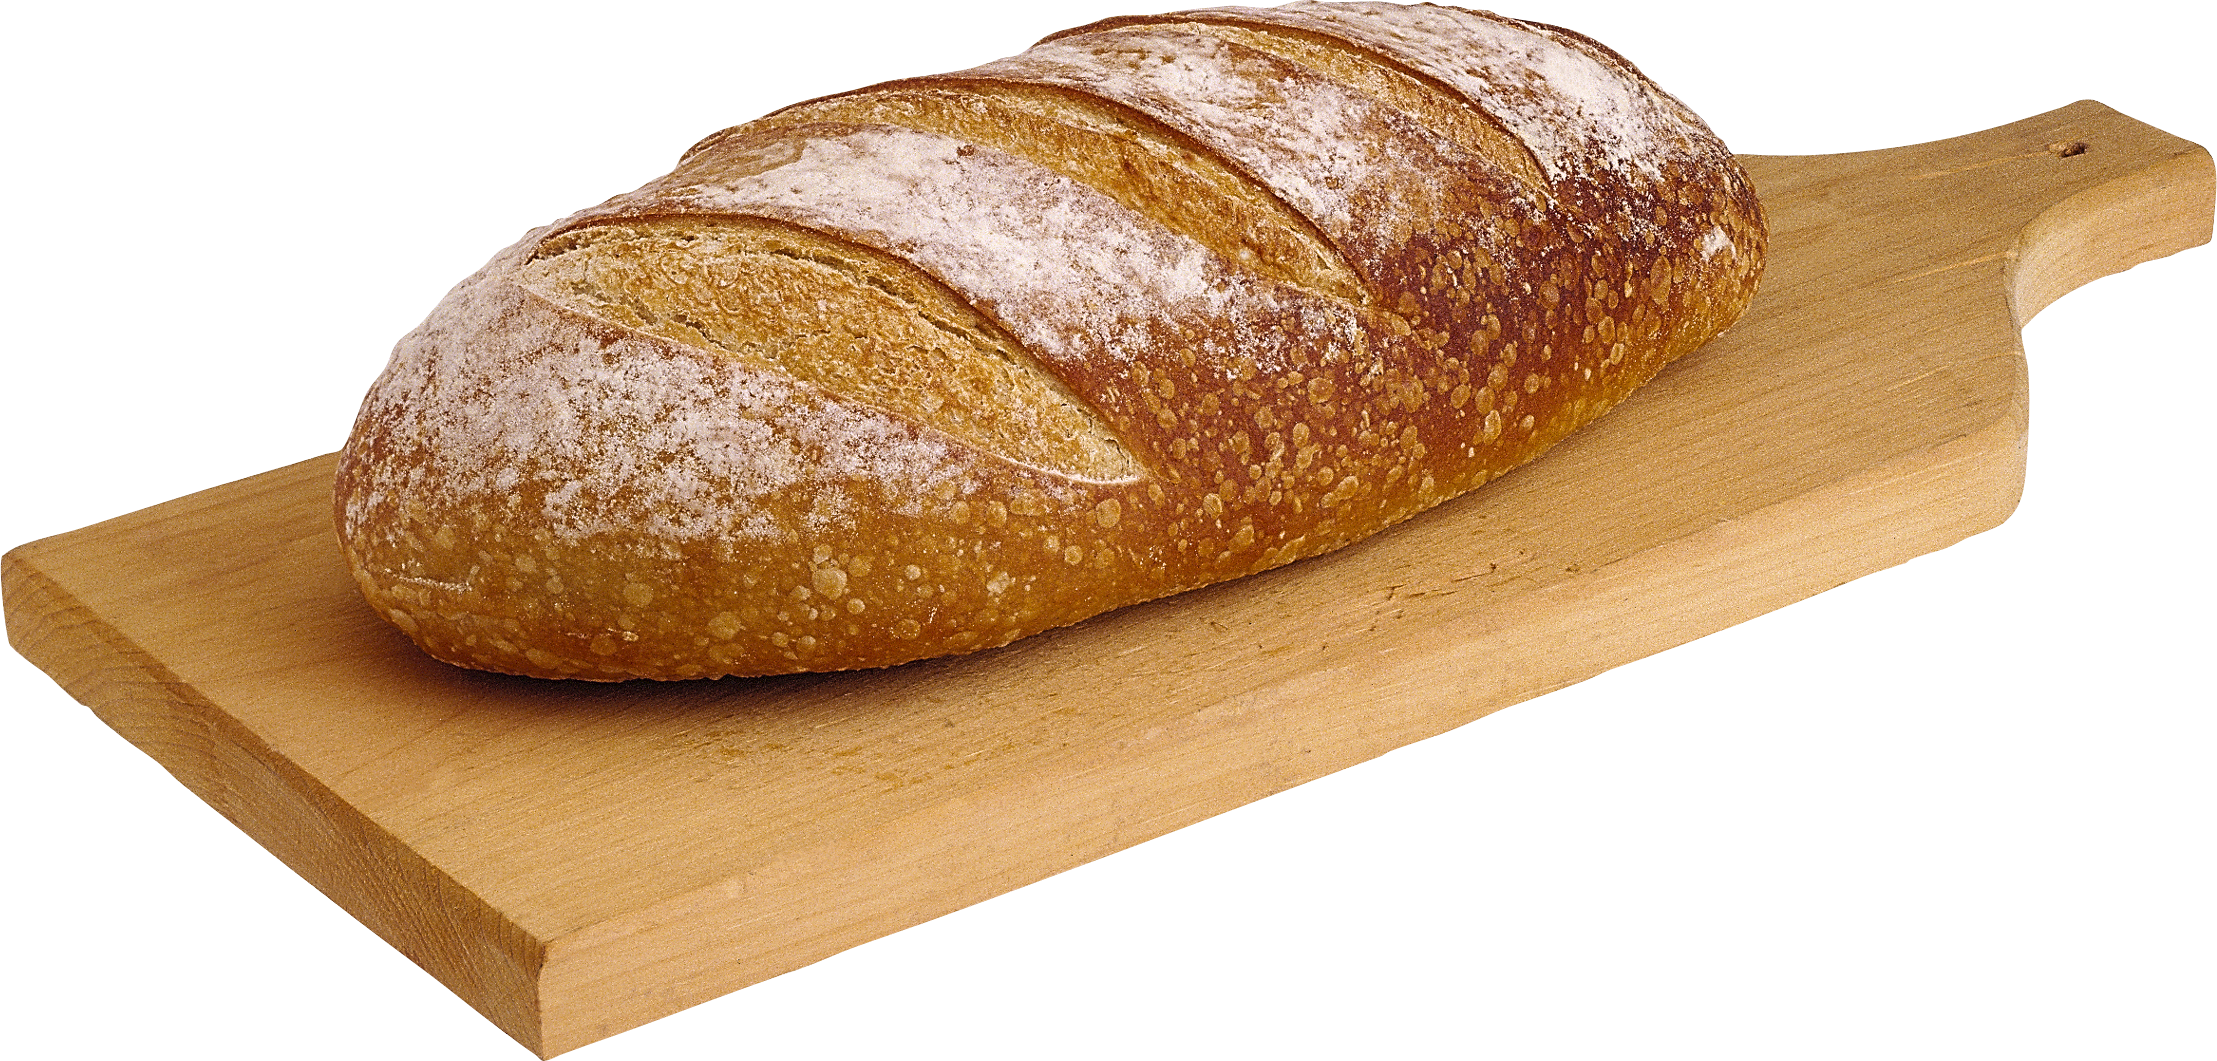 Bread PNG - 25532